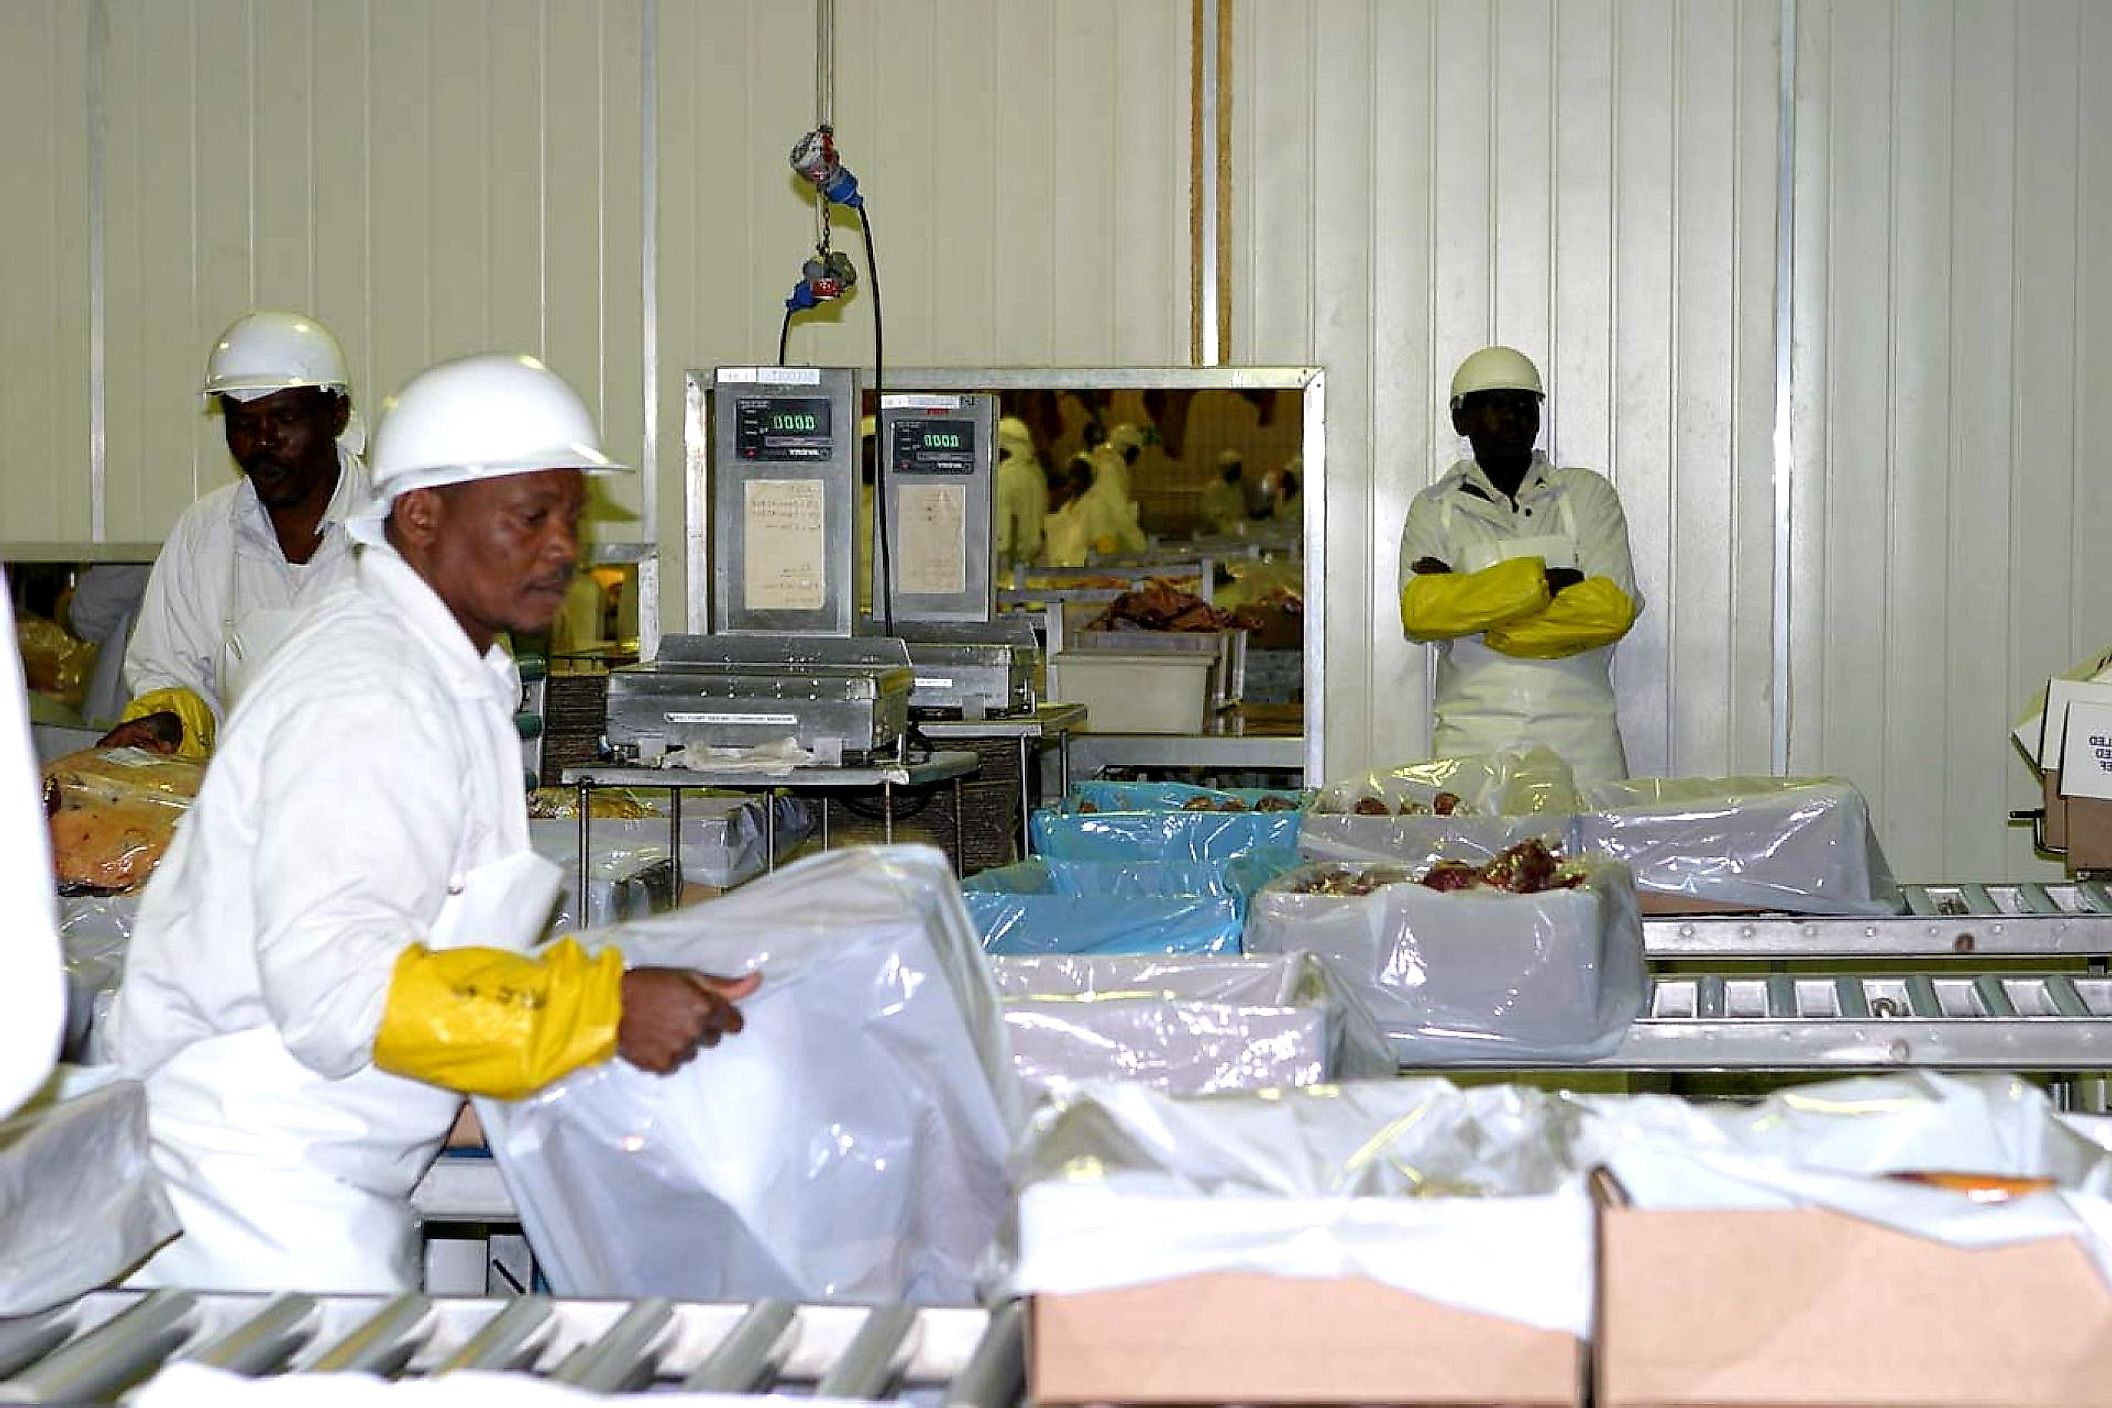 Meat packers preparing beef for export.